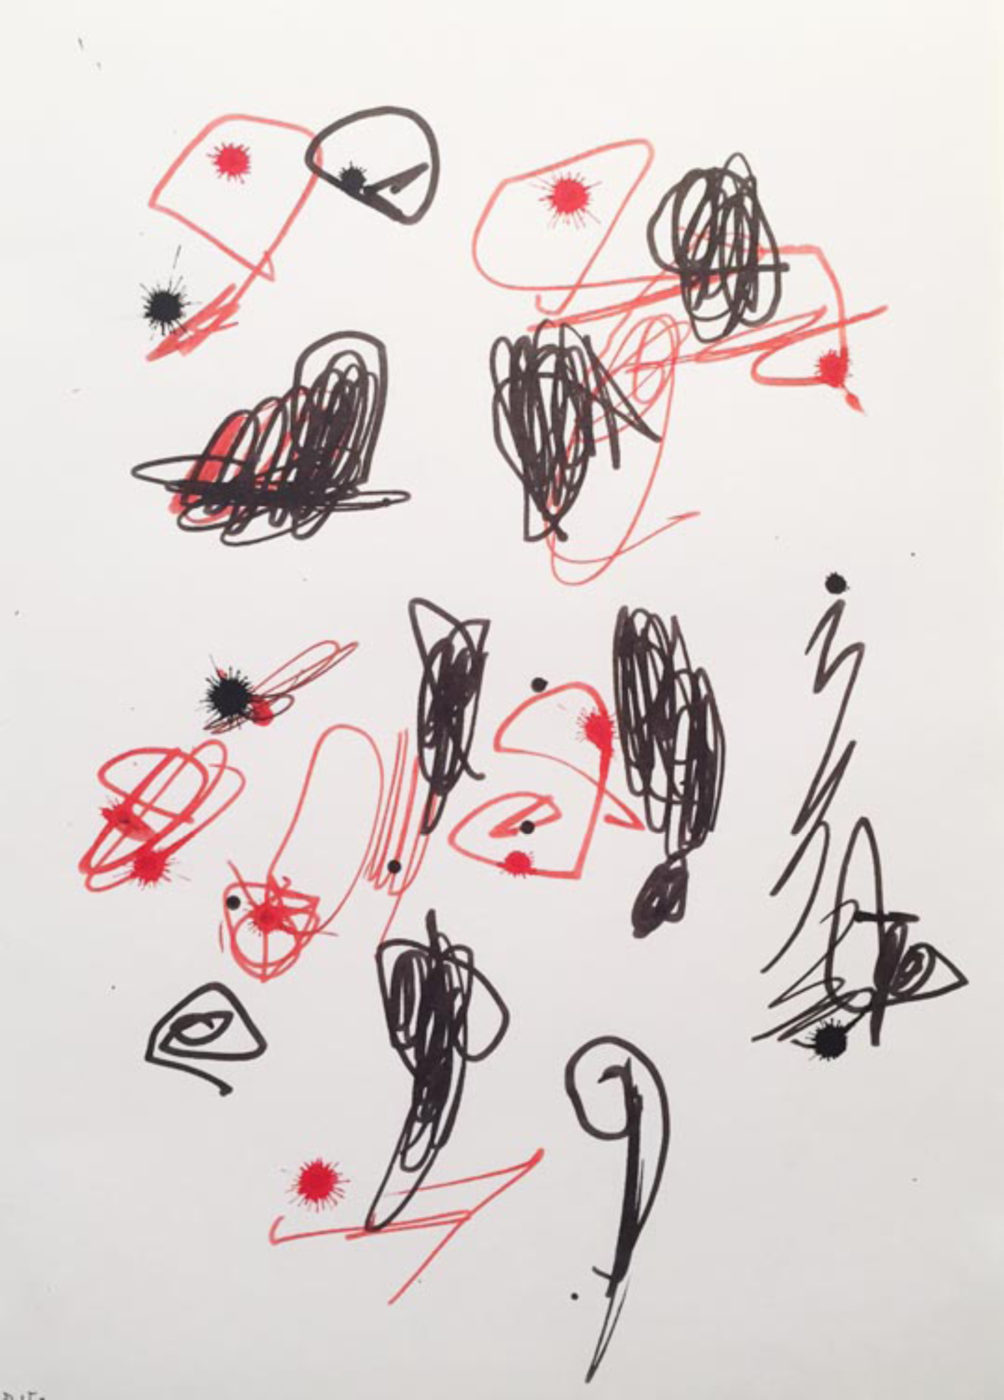 MARC FELD 2003 LITTLE SONG FOR MAURICIO KAGEL 12 Stylo feutre sur papier 21x29, 7 cm .jpg